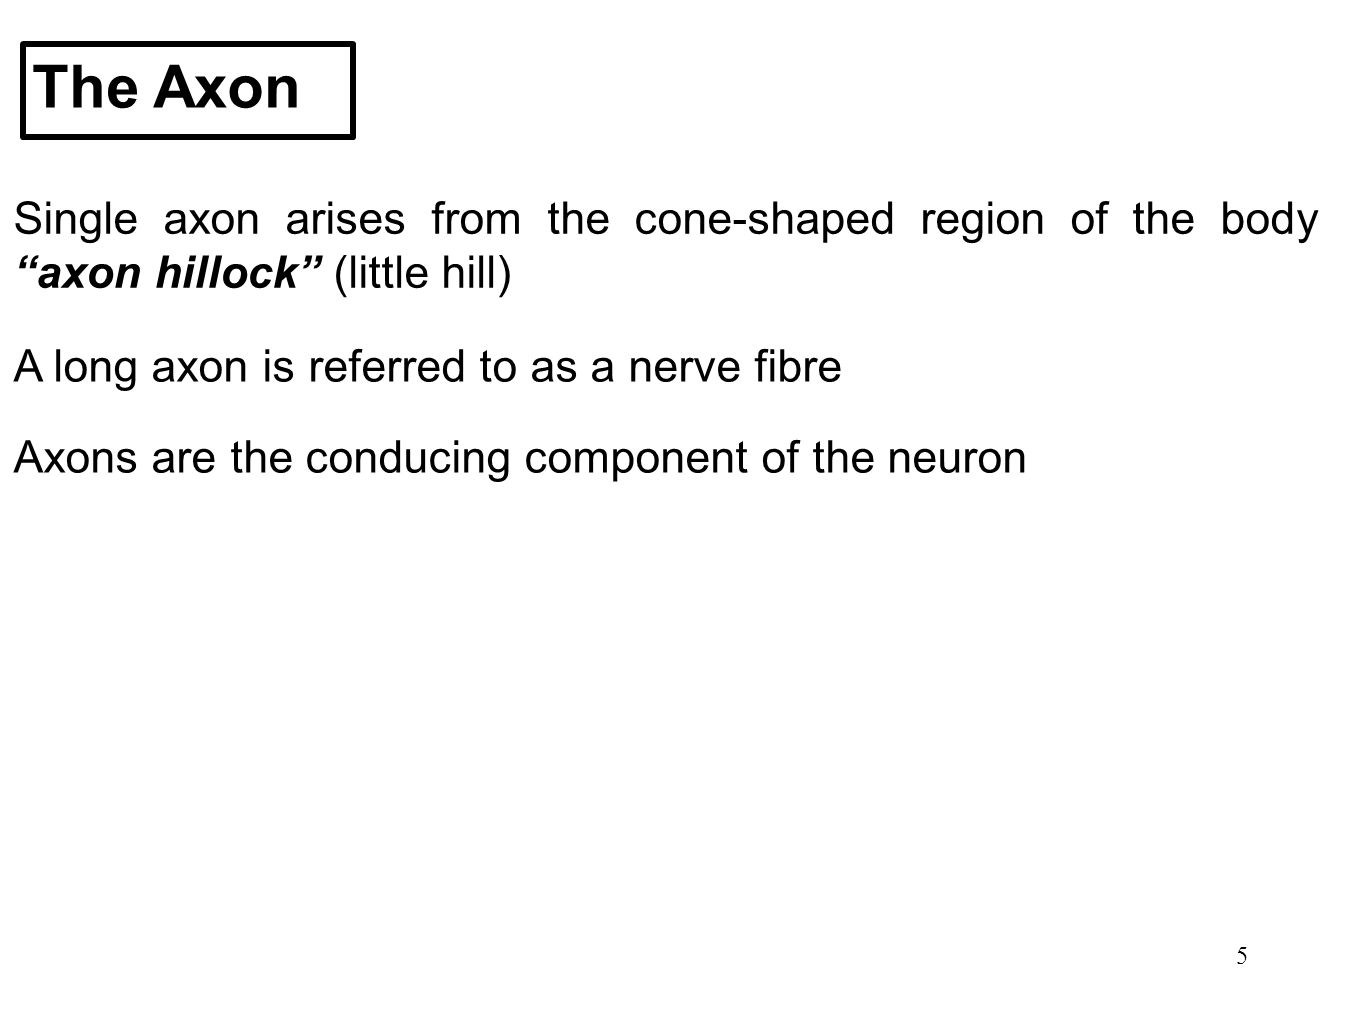 """5 The Axon Single axon arises from the cone-shaped region of the body """"axon hillock"""" (little hill) A long axon is referred to as a nerve fibre Axons a"""